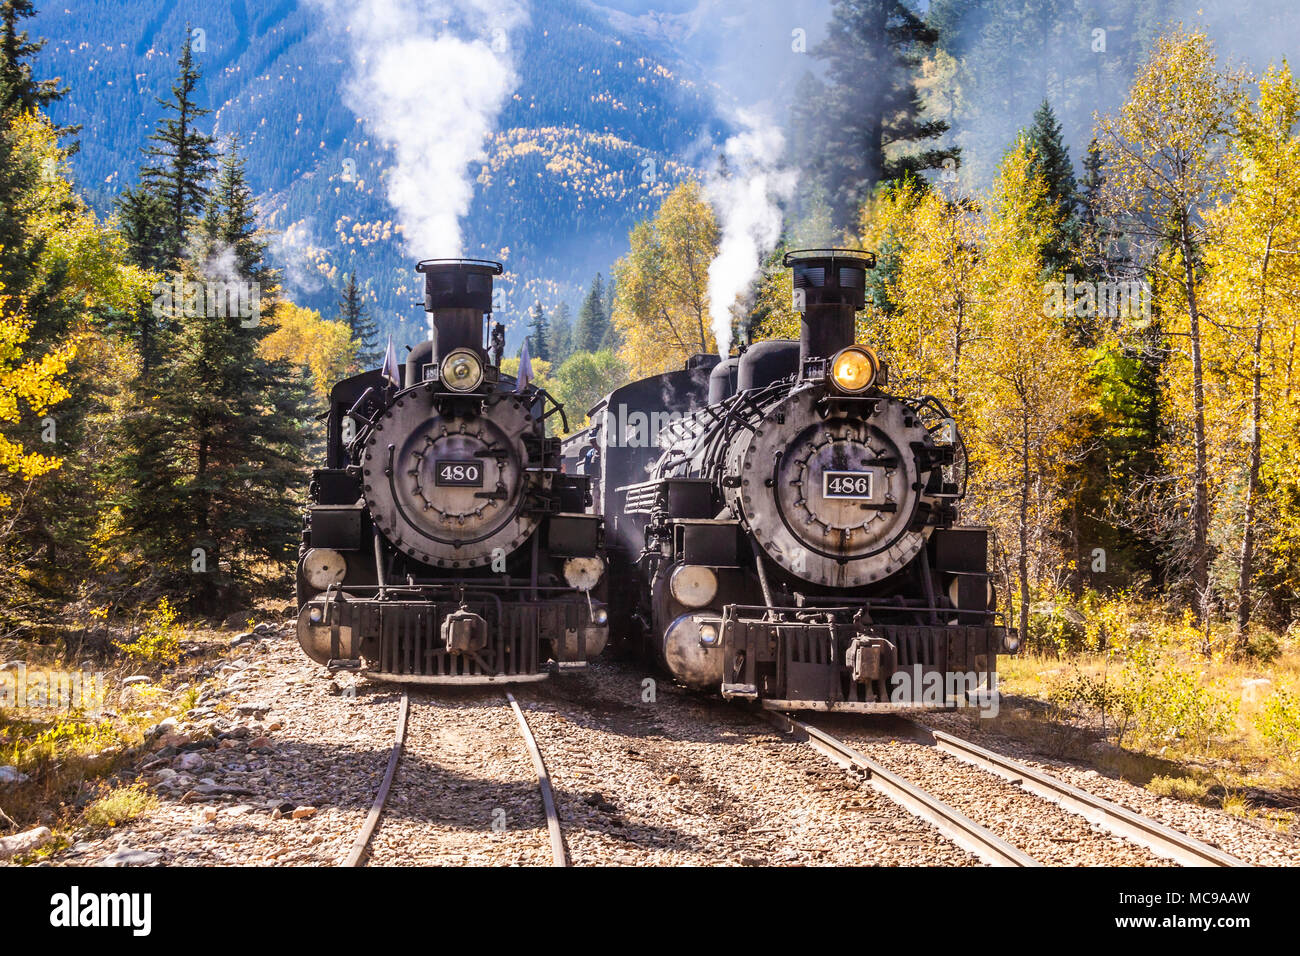 Durango and Silverton Narrow Gauge Railroad 1925 2-8-2 Mikado type Baldwin Steam locomotive #480 with historic mixed consist train on siding. - Stock Image